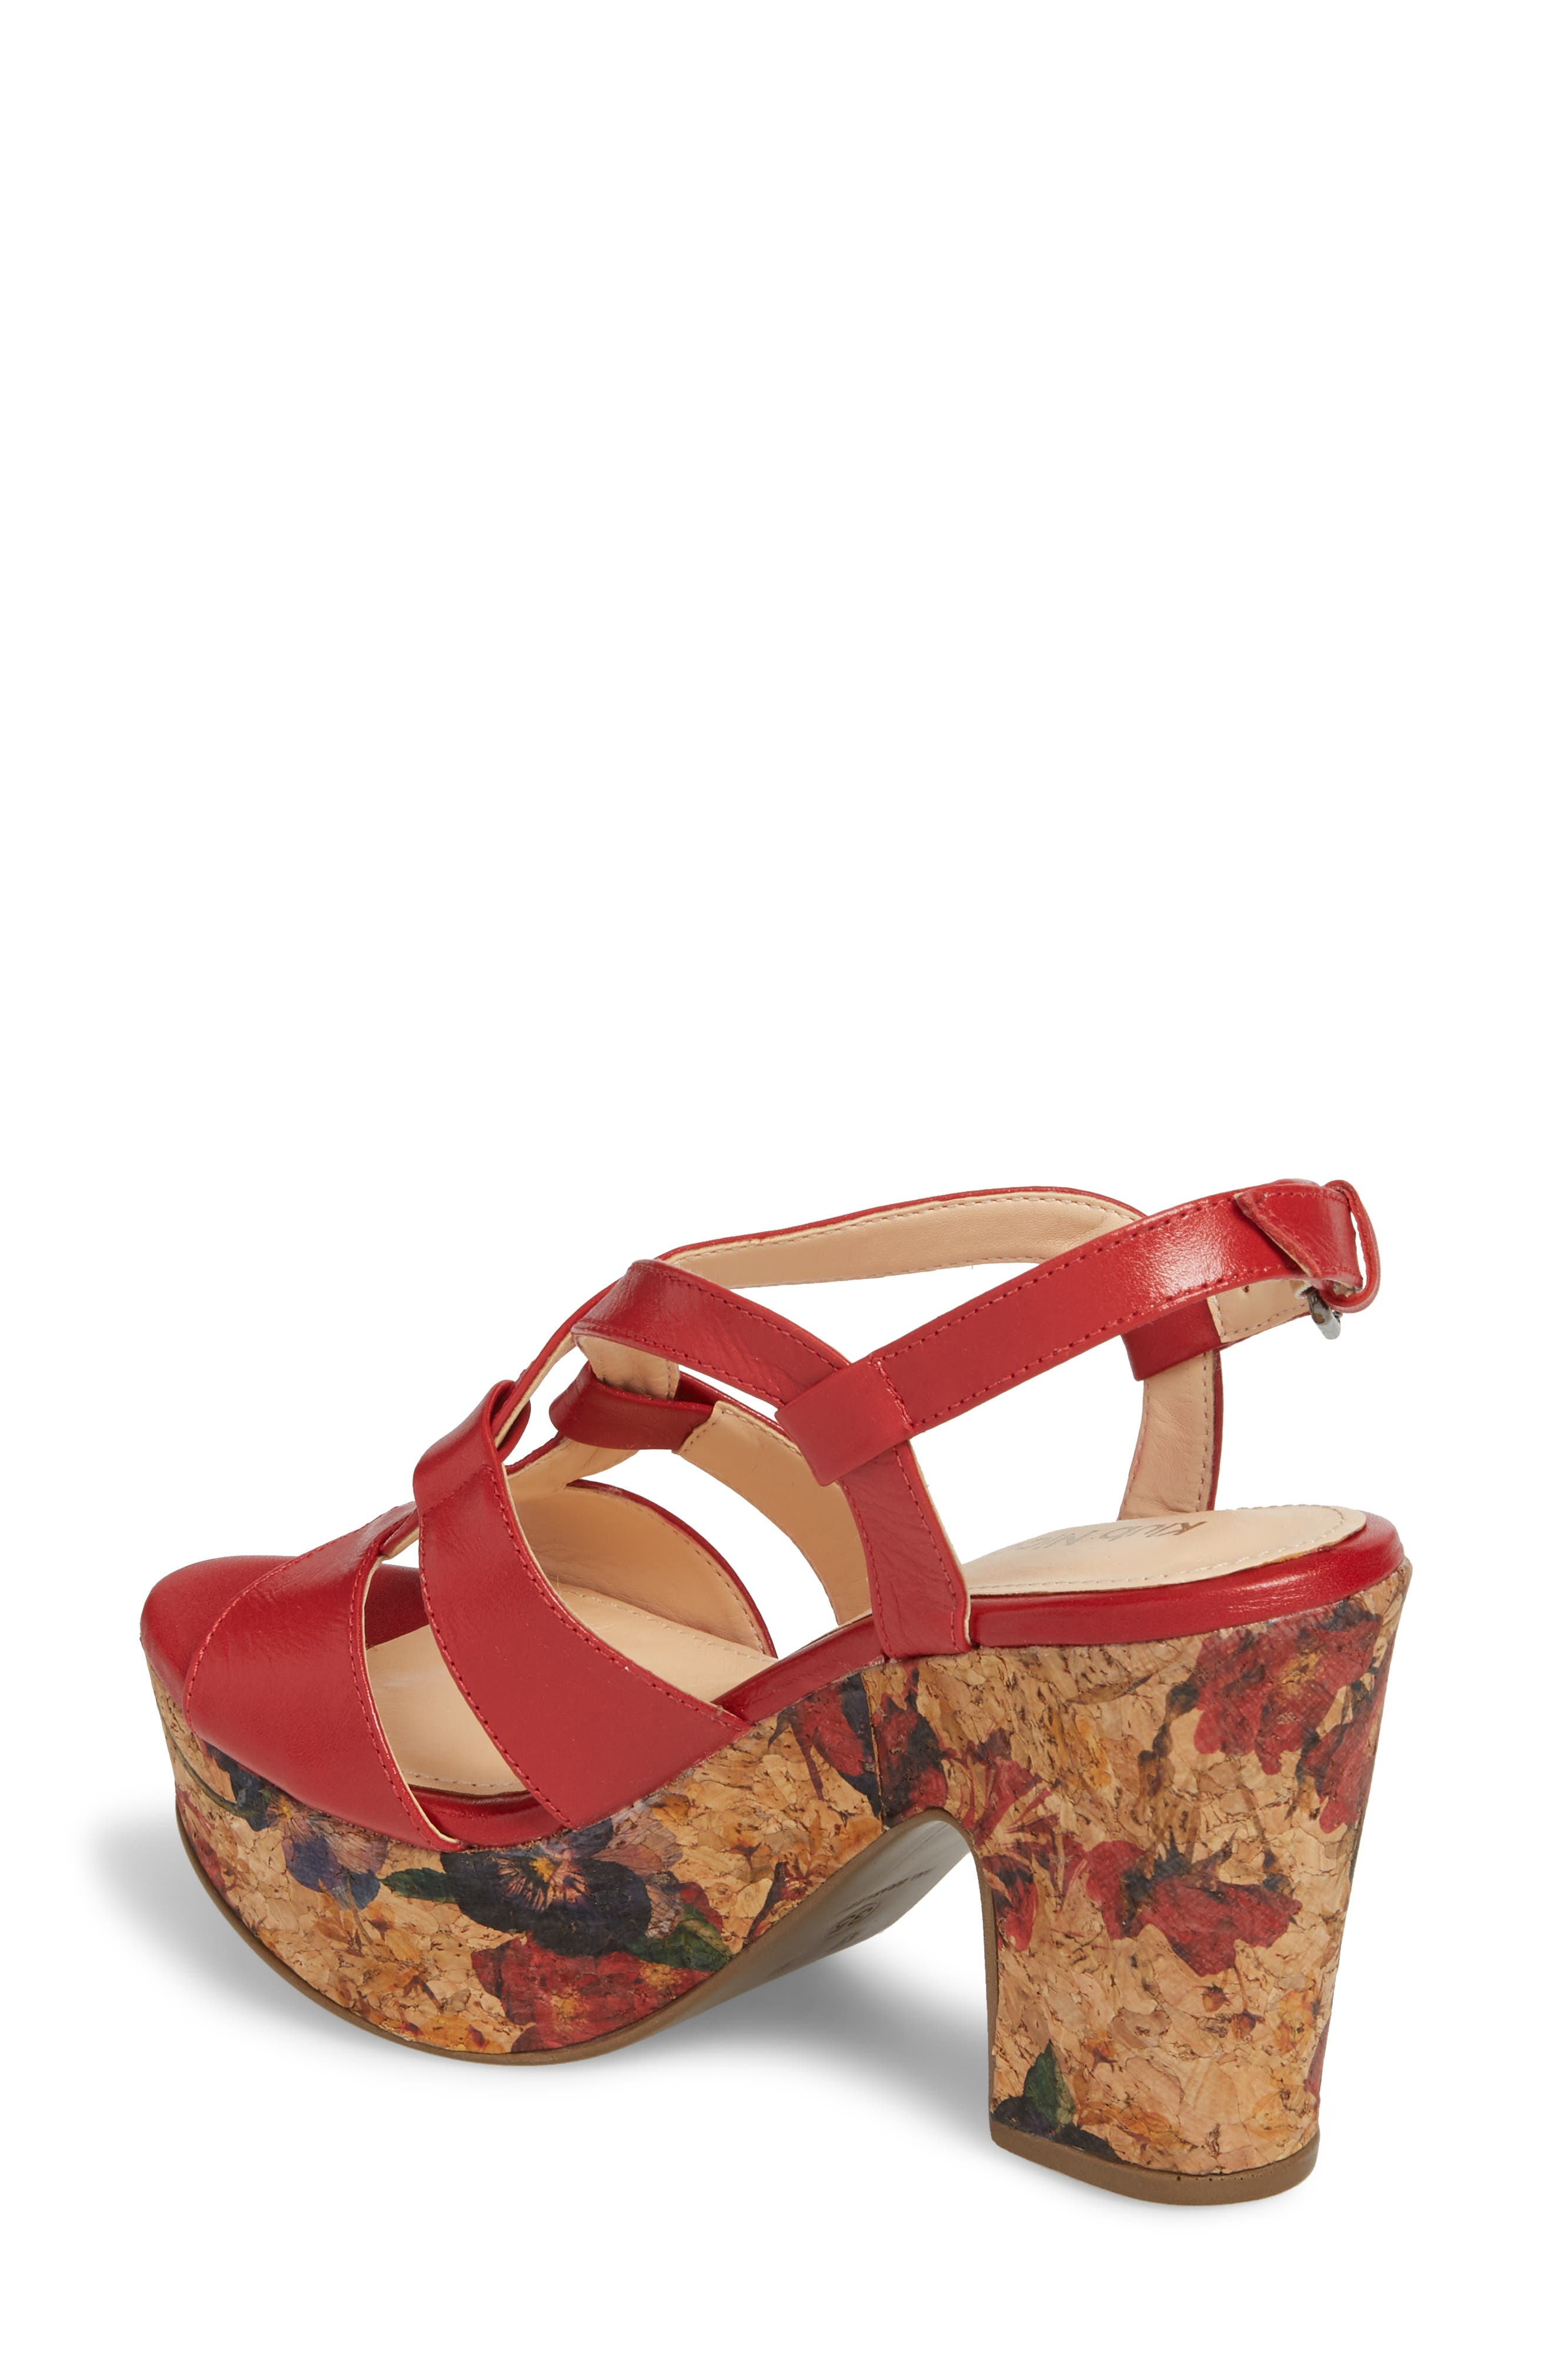 Victoria Platform Sandal,                             Alternate thumbnail 2, color,                             Red Leather